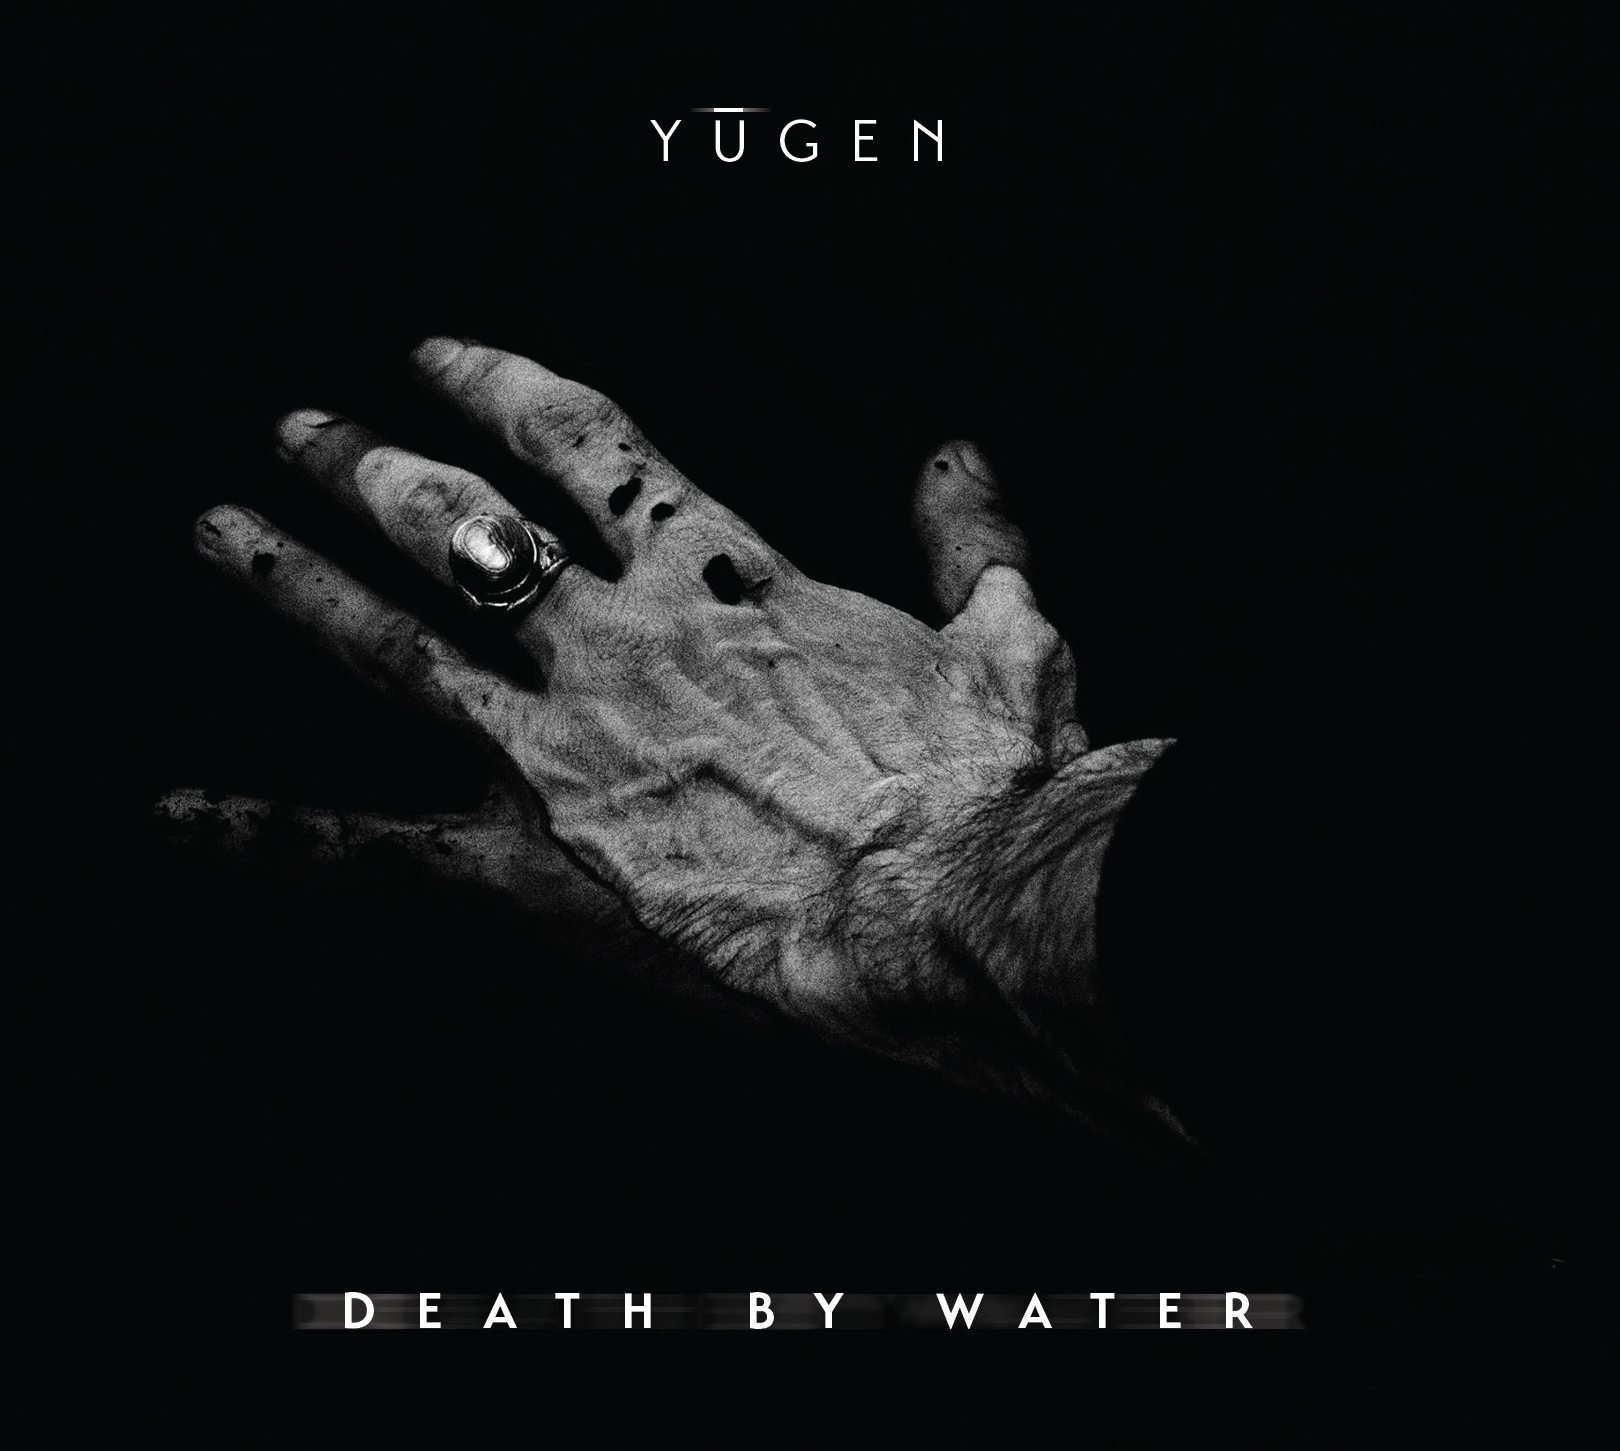 YUGEN - Death by water CD